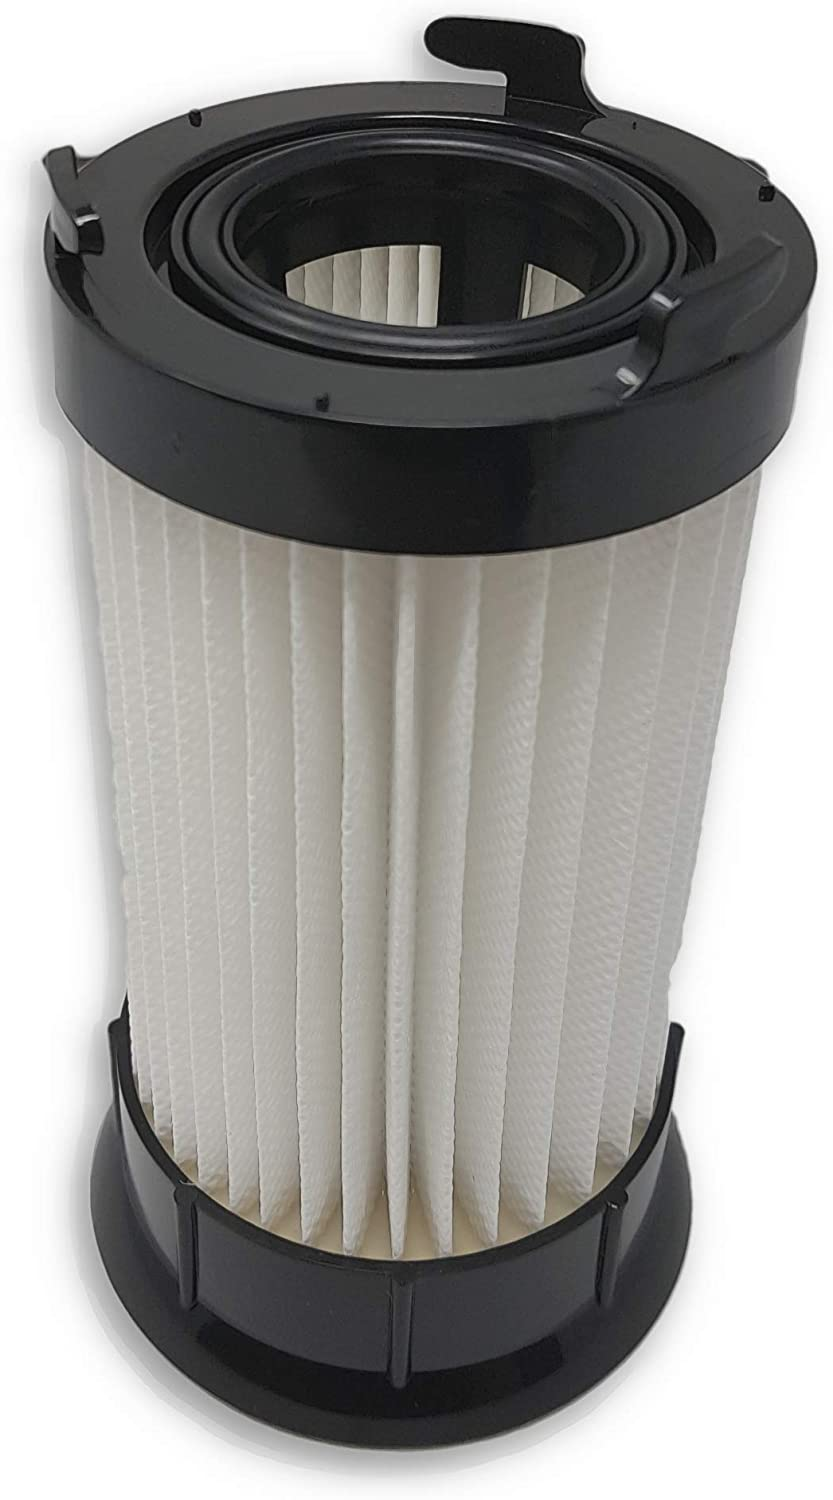 ZVac 2Pk Compatible Filters Replacement for Eureka DCF-4 DCF-18 HEPA Filter. Replaces Parts# 63073A & 63073C